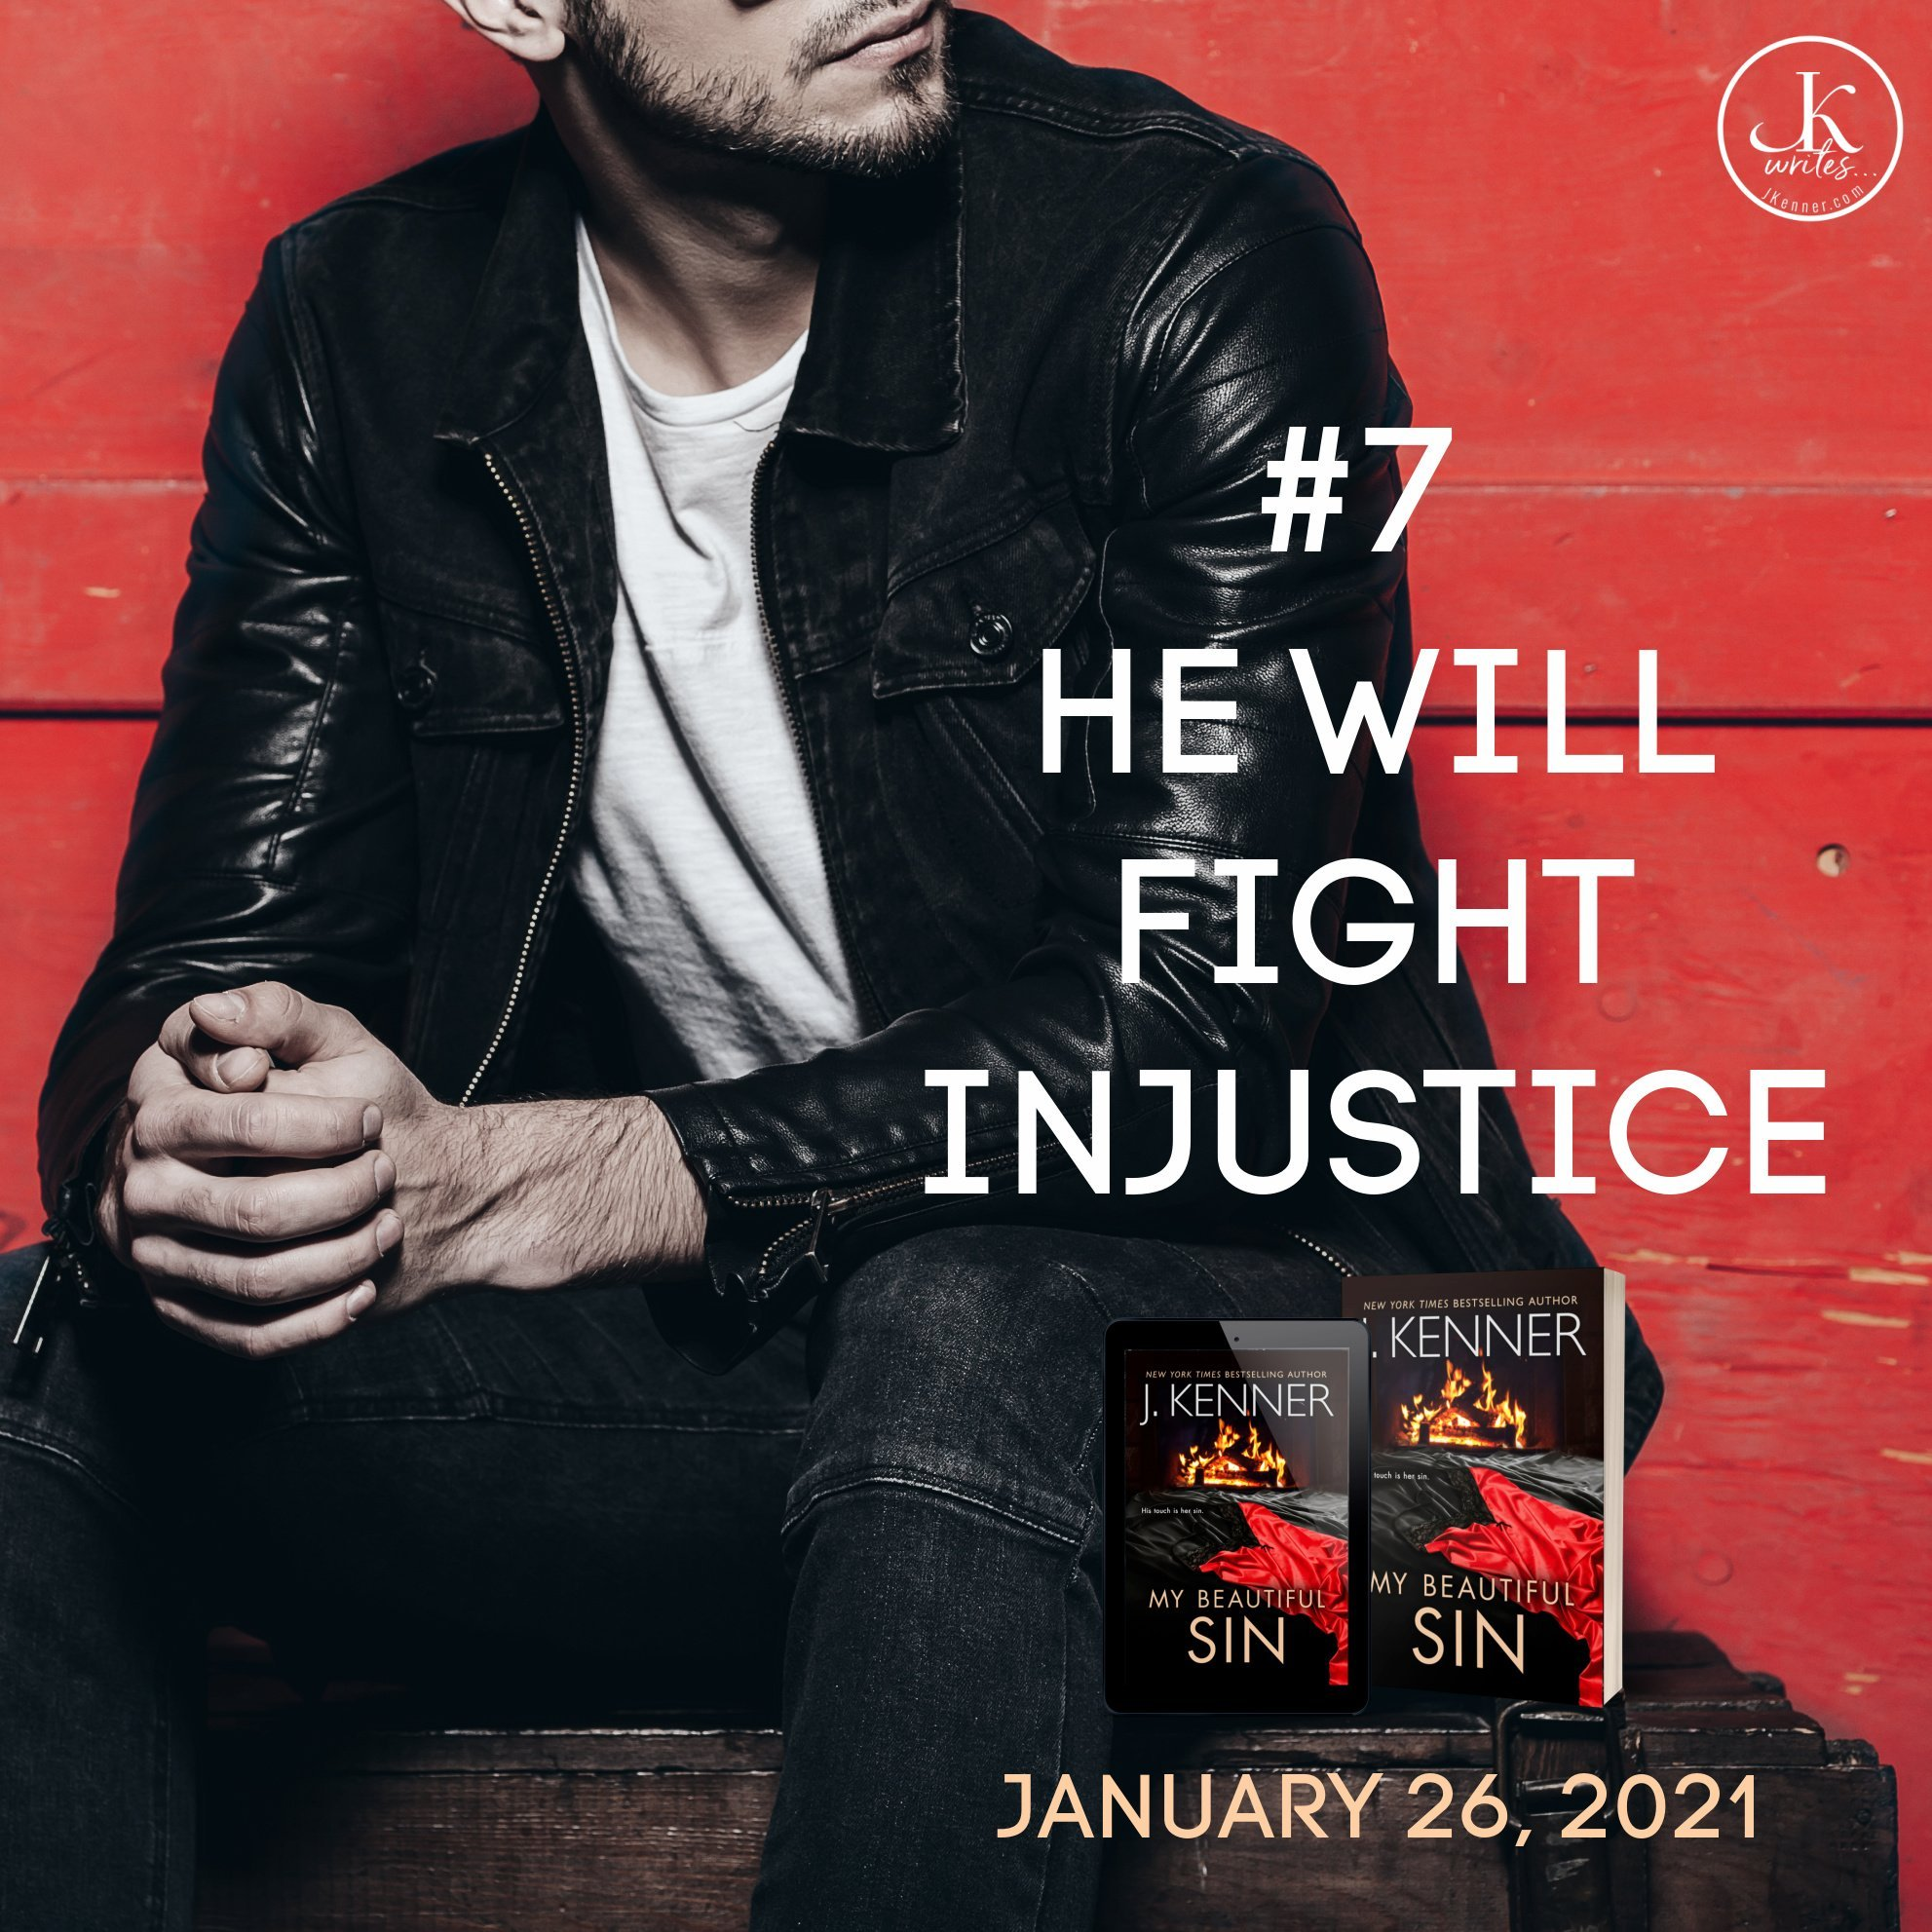 Devlin Saint will fight injustice